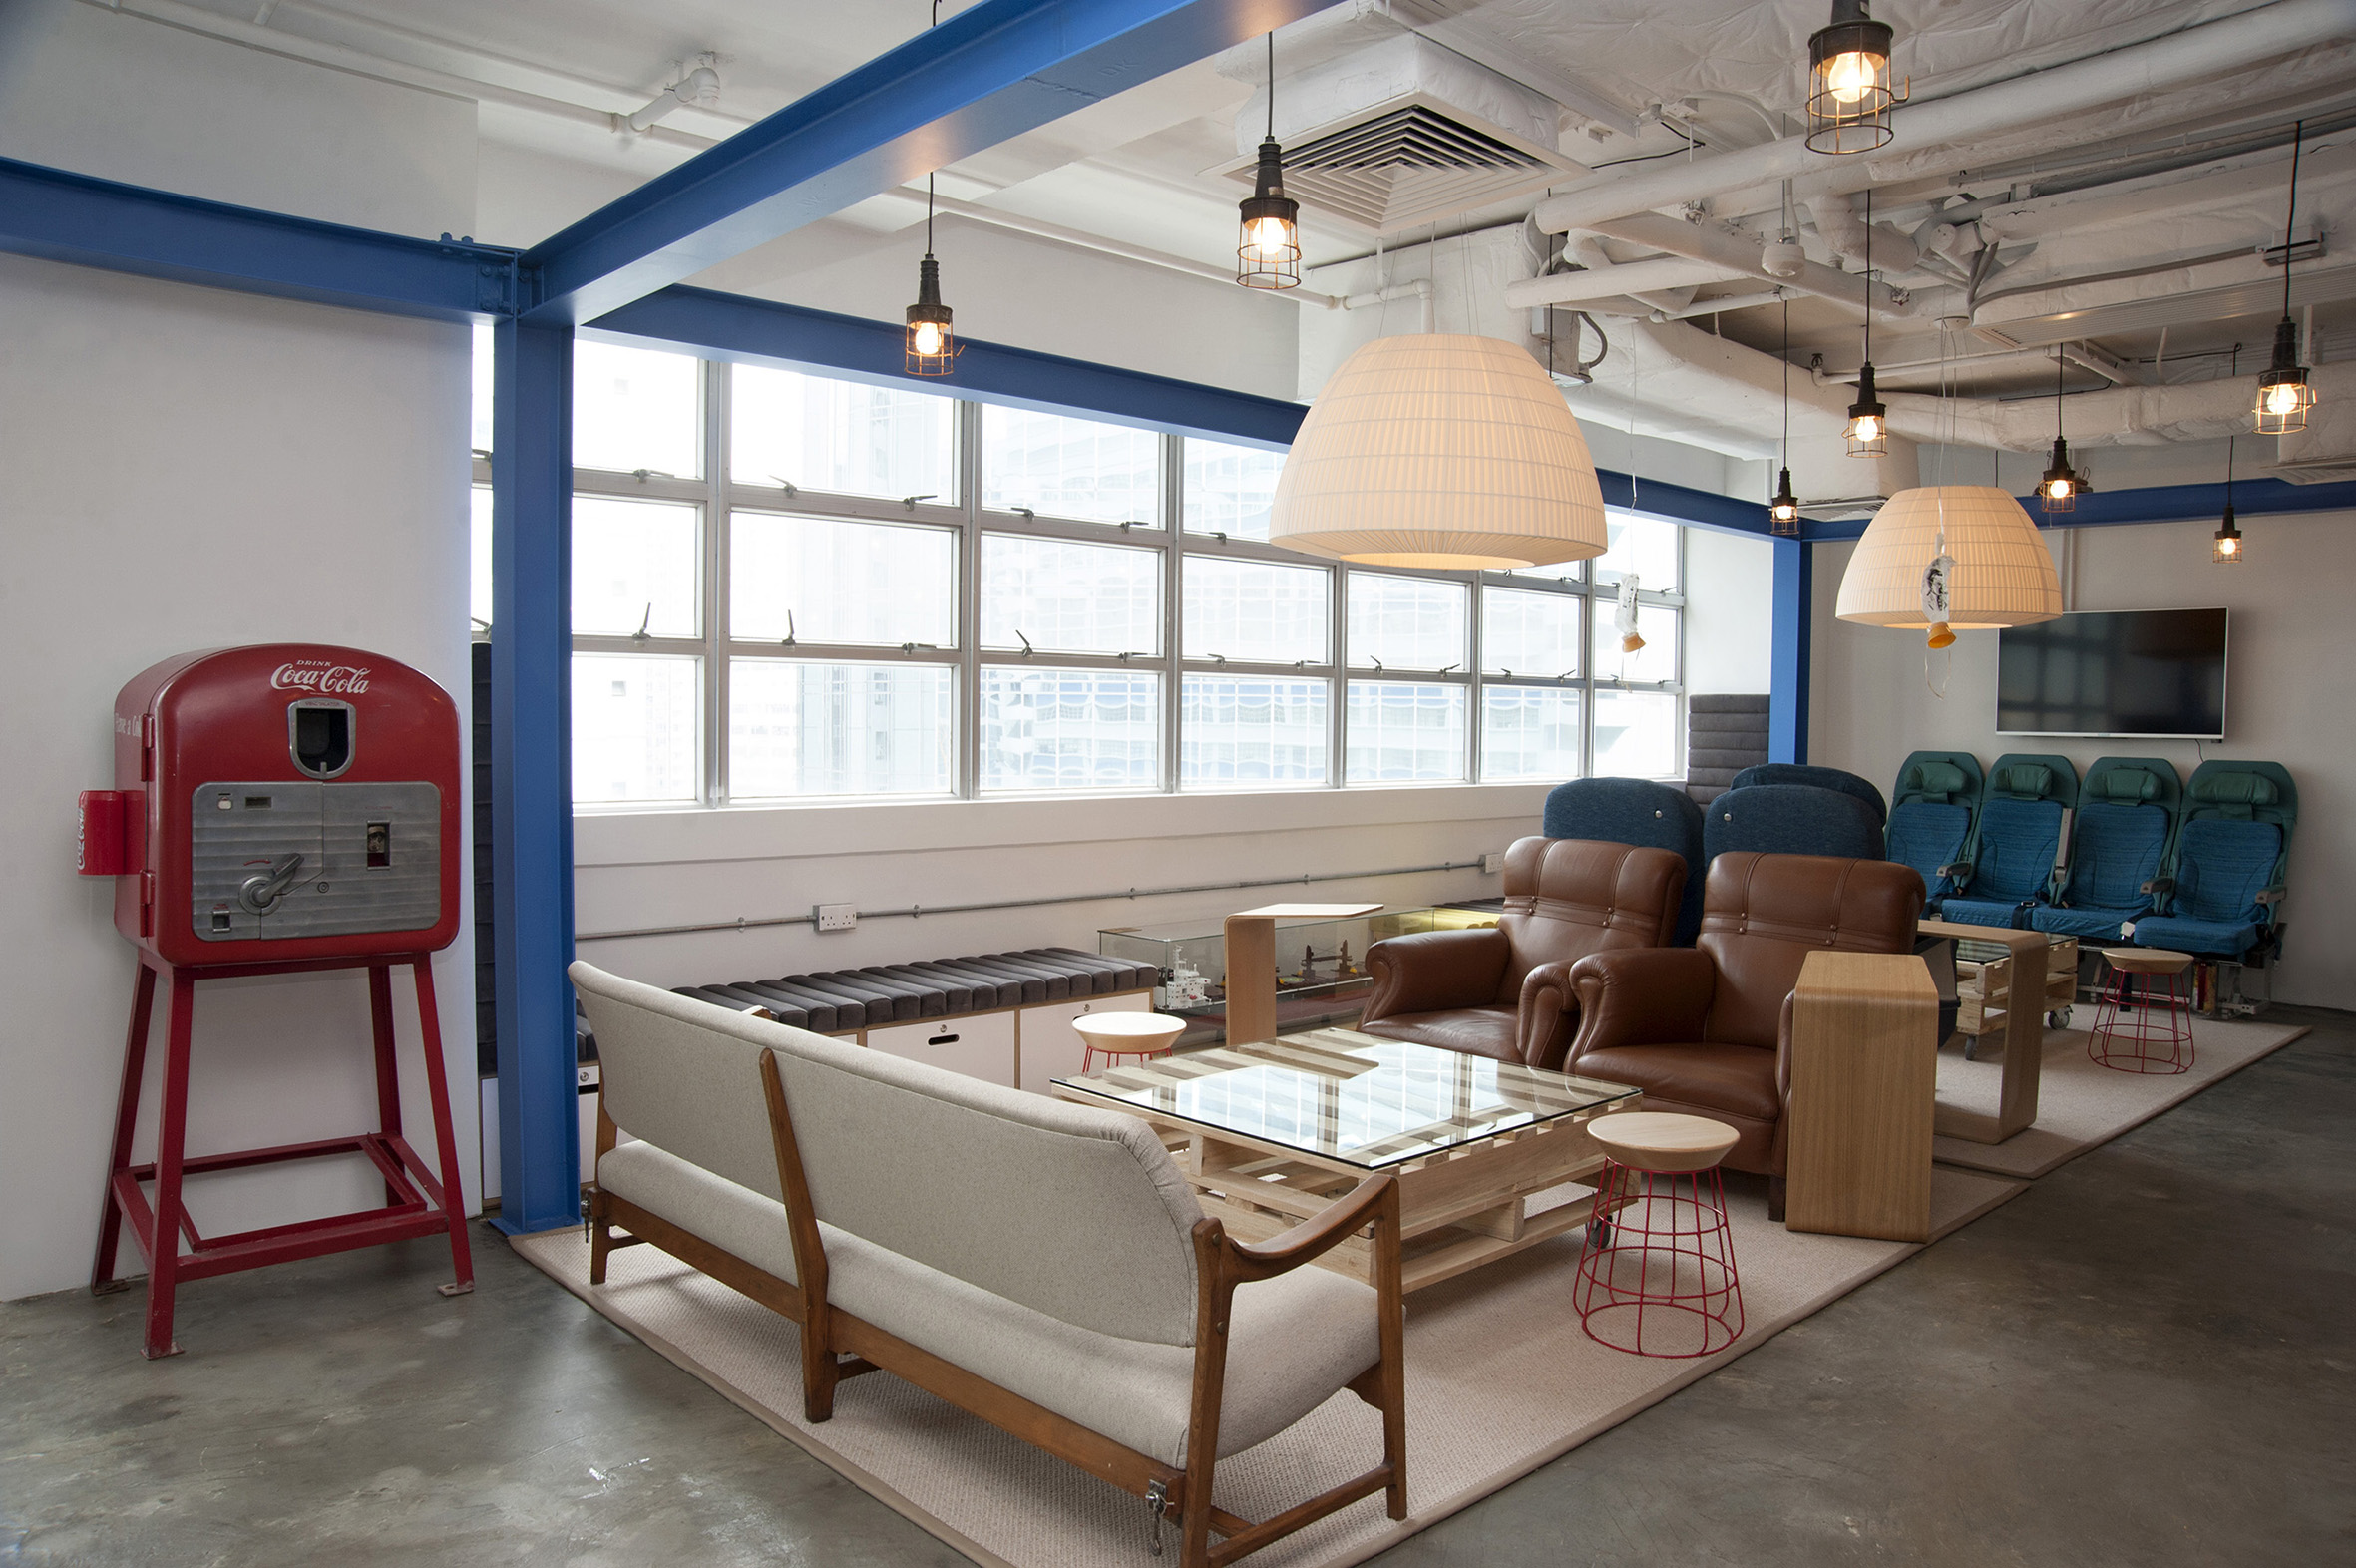 a peak into blueprint hk s newest co working and accelerator space here s a peak into what this ideal working environment looks like